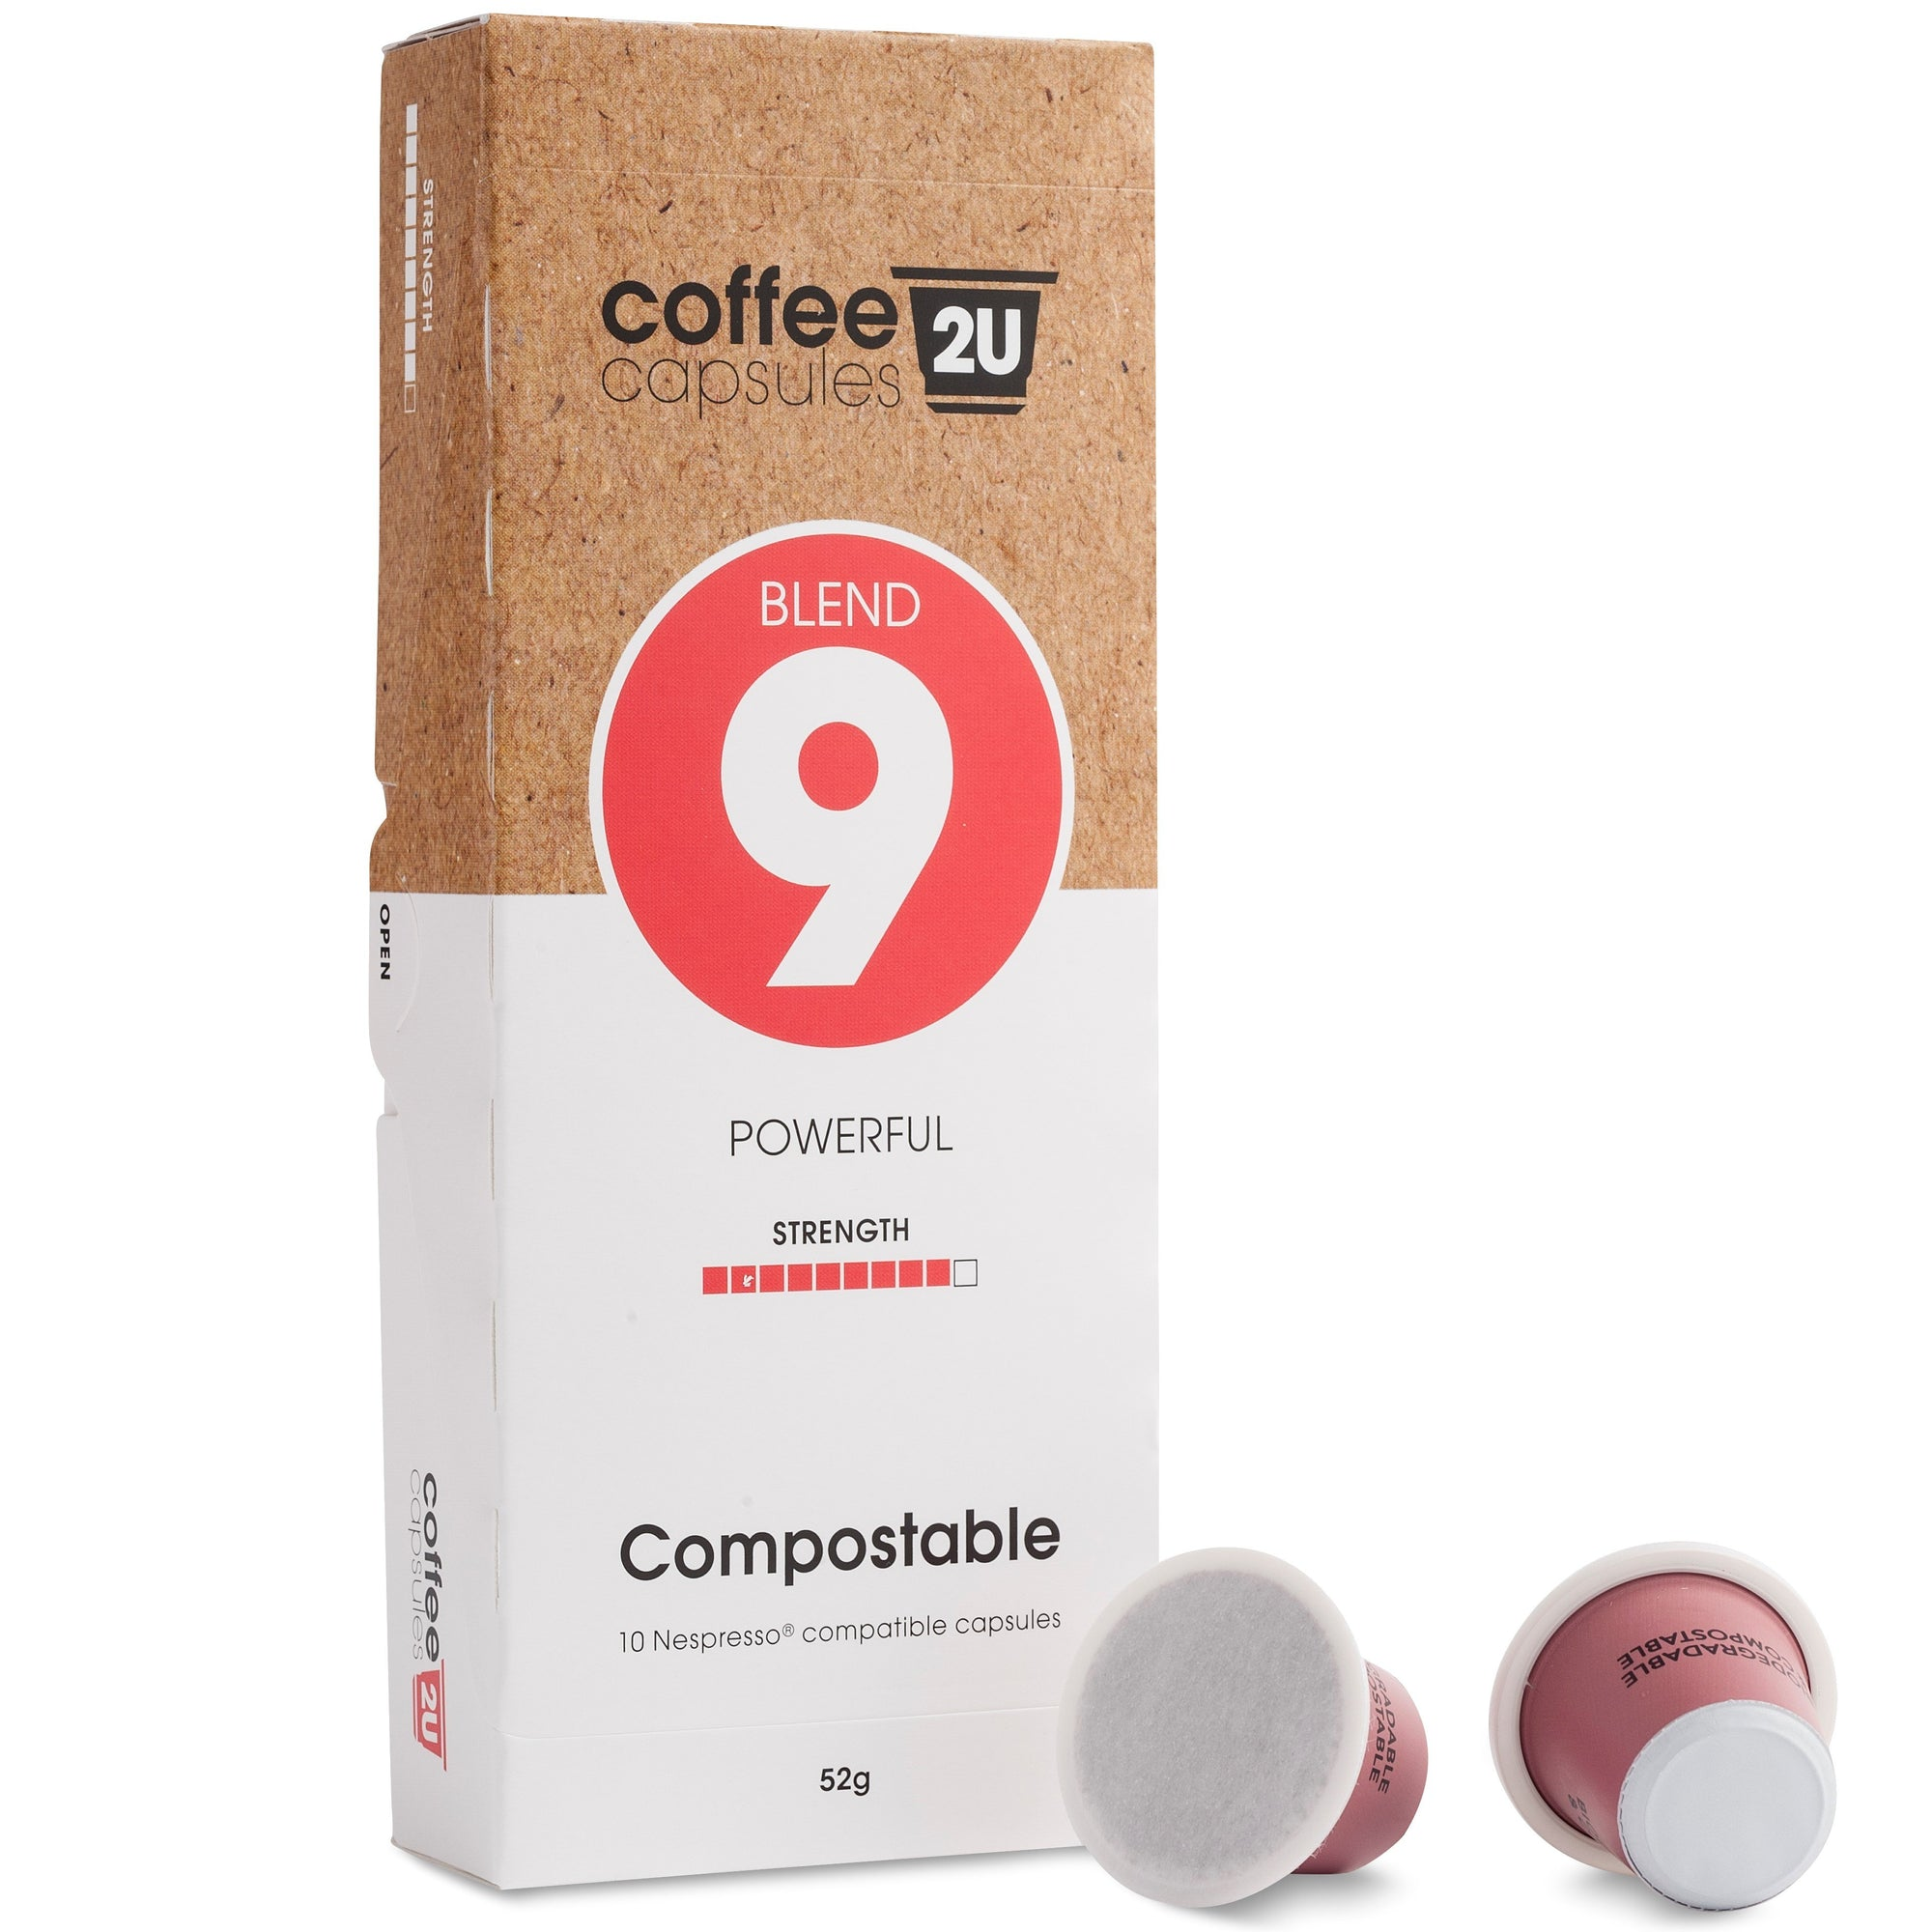 Compostable Blend 9 - Powerful